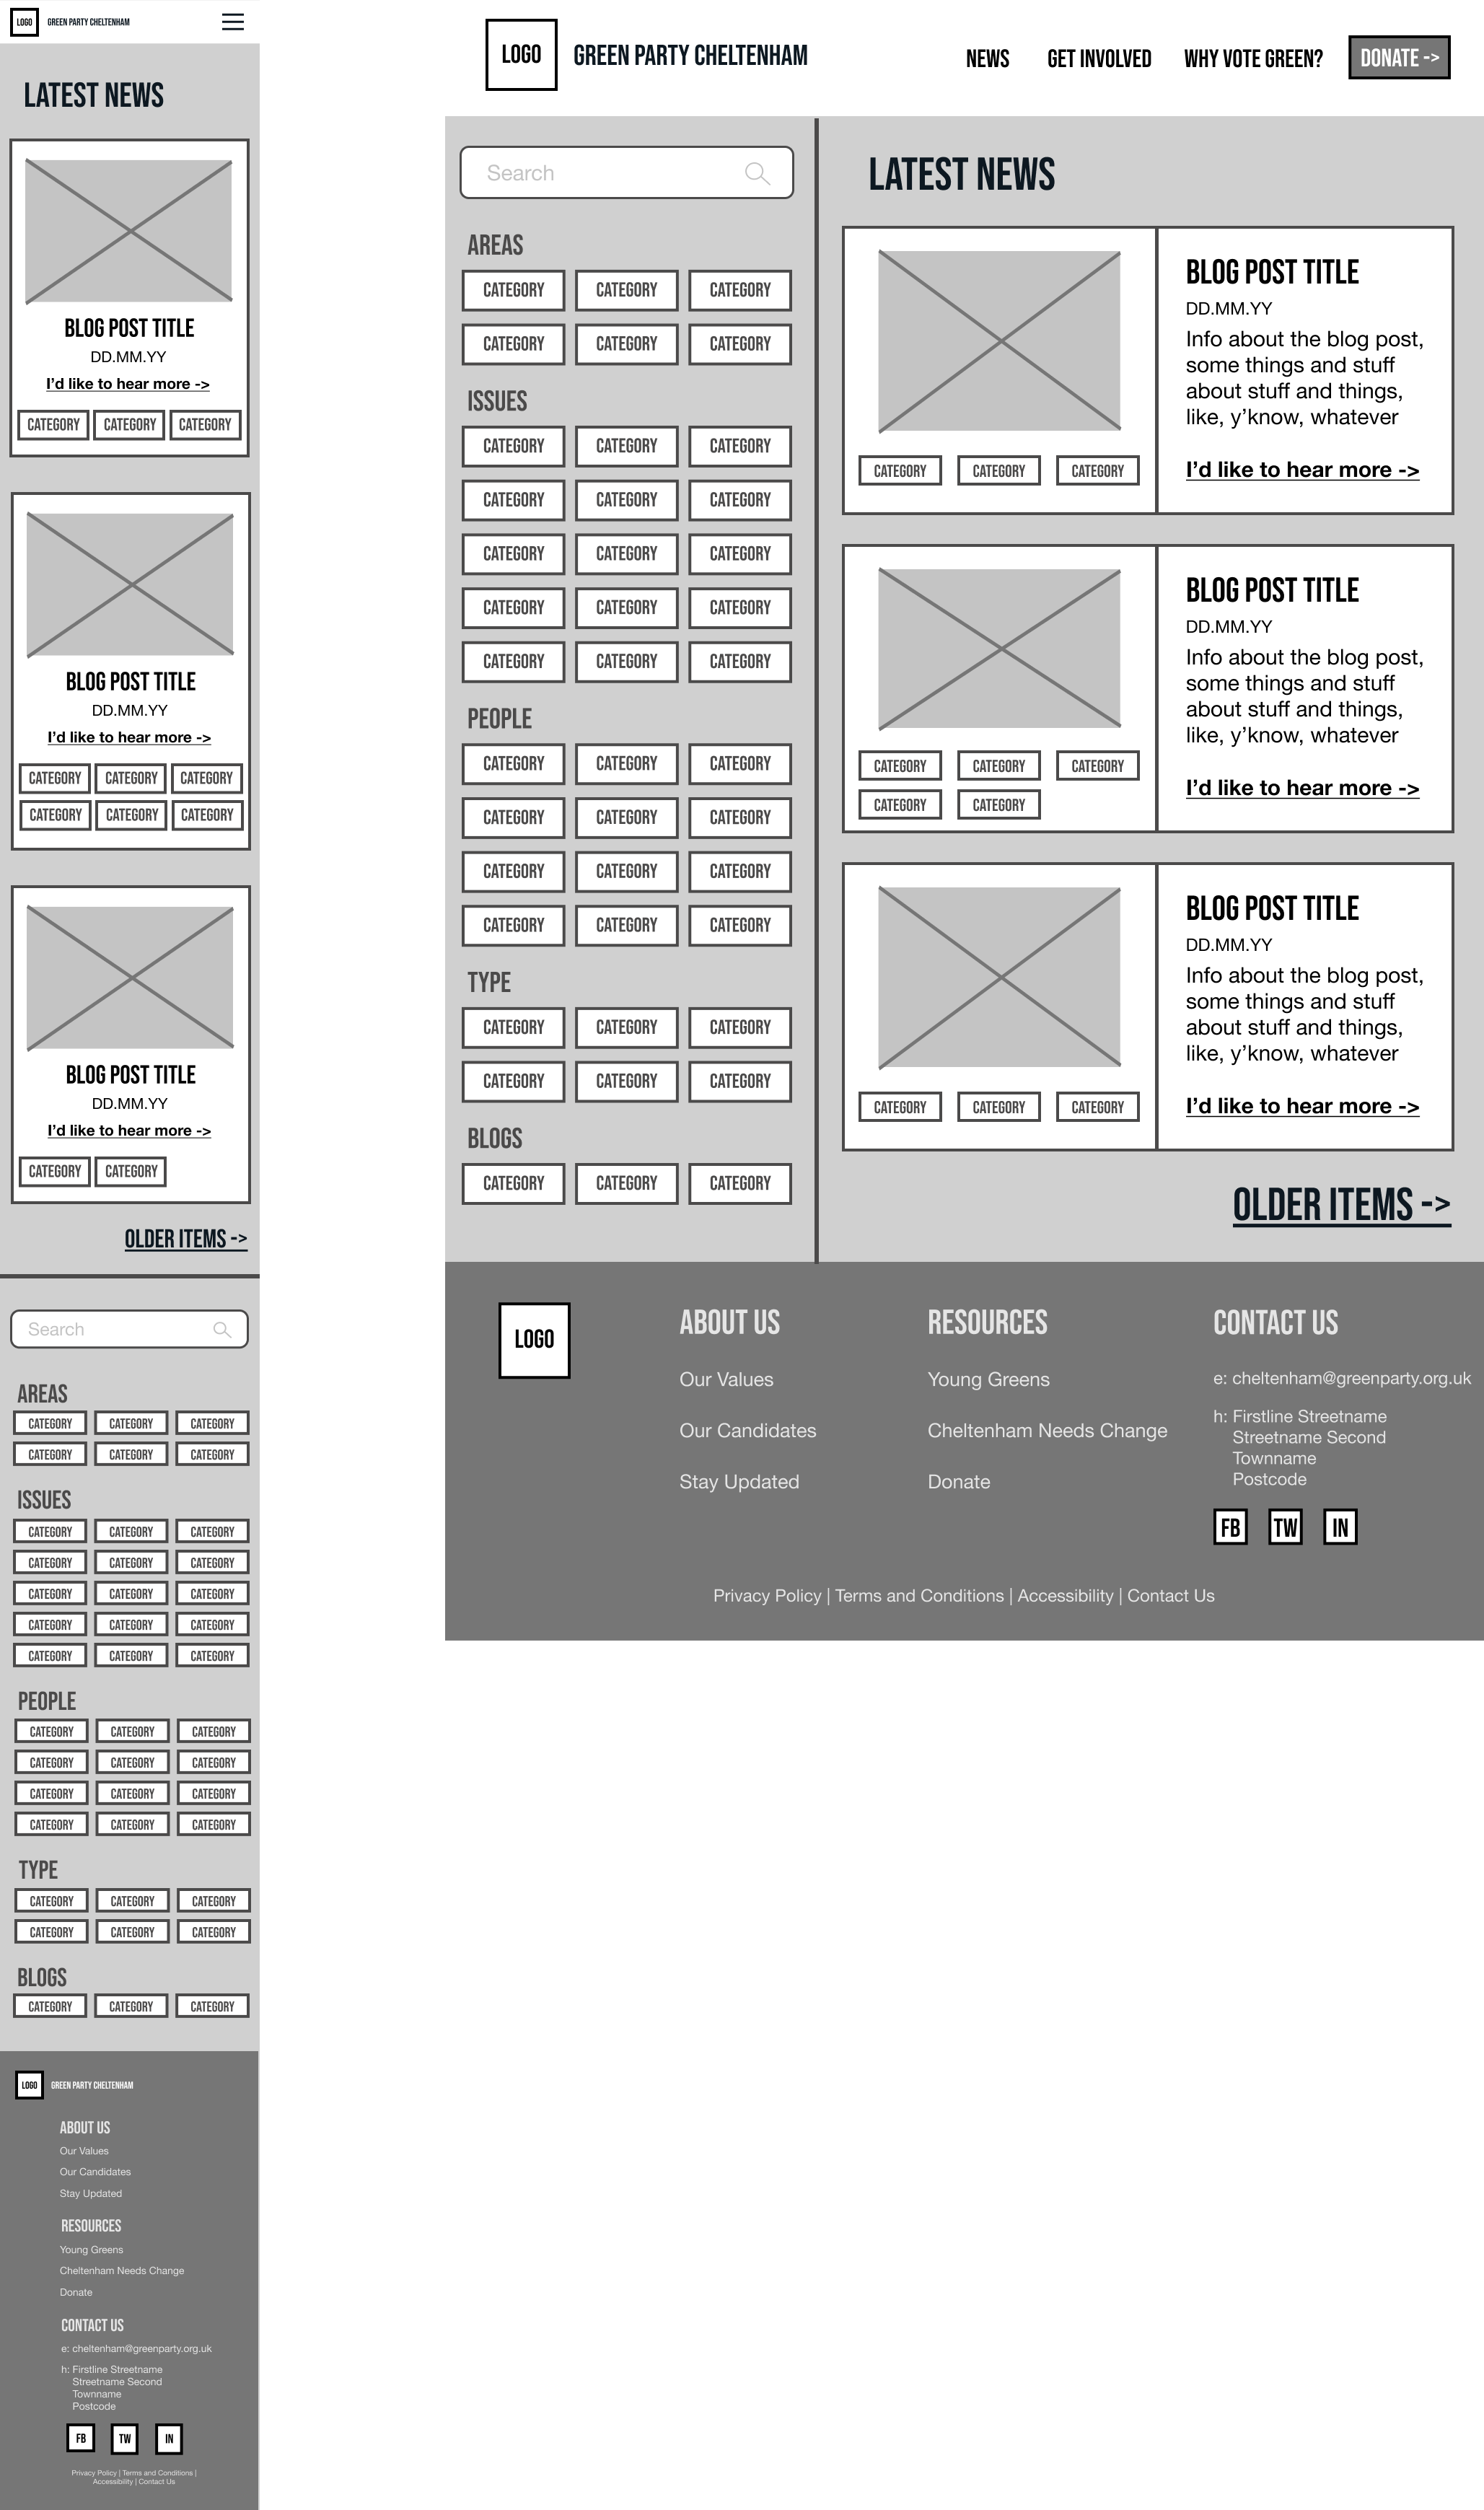 The Low Fidelity Wireframe for the News page.